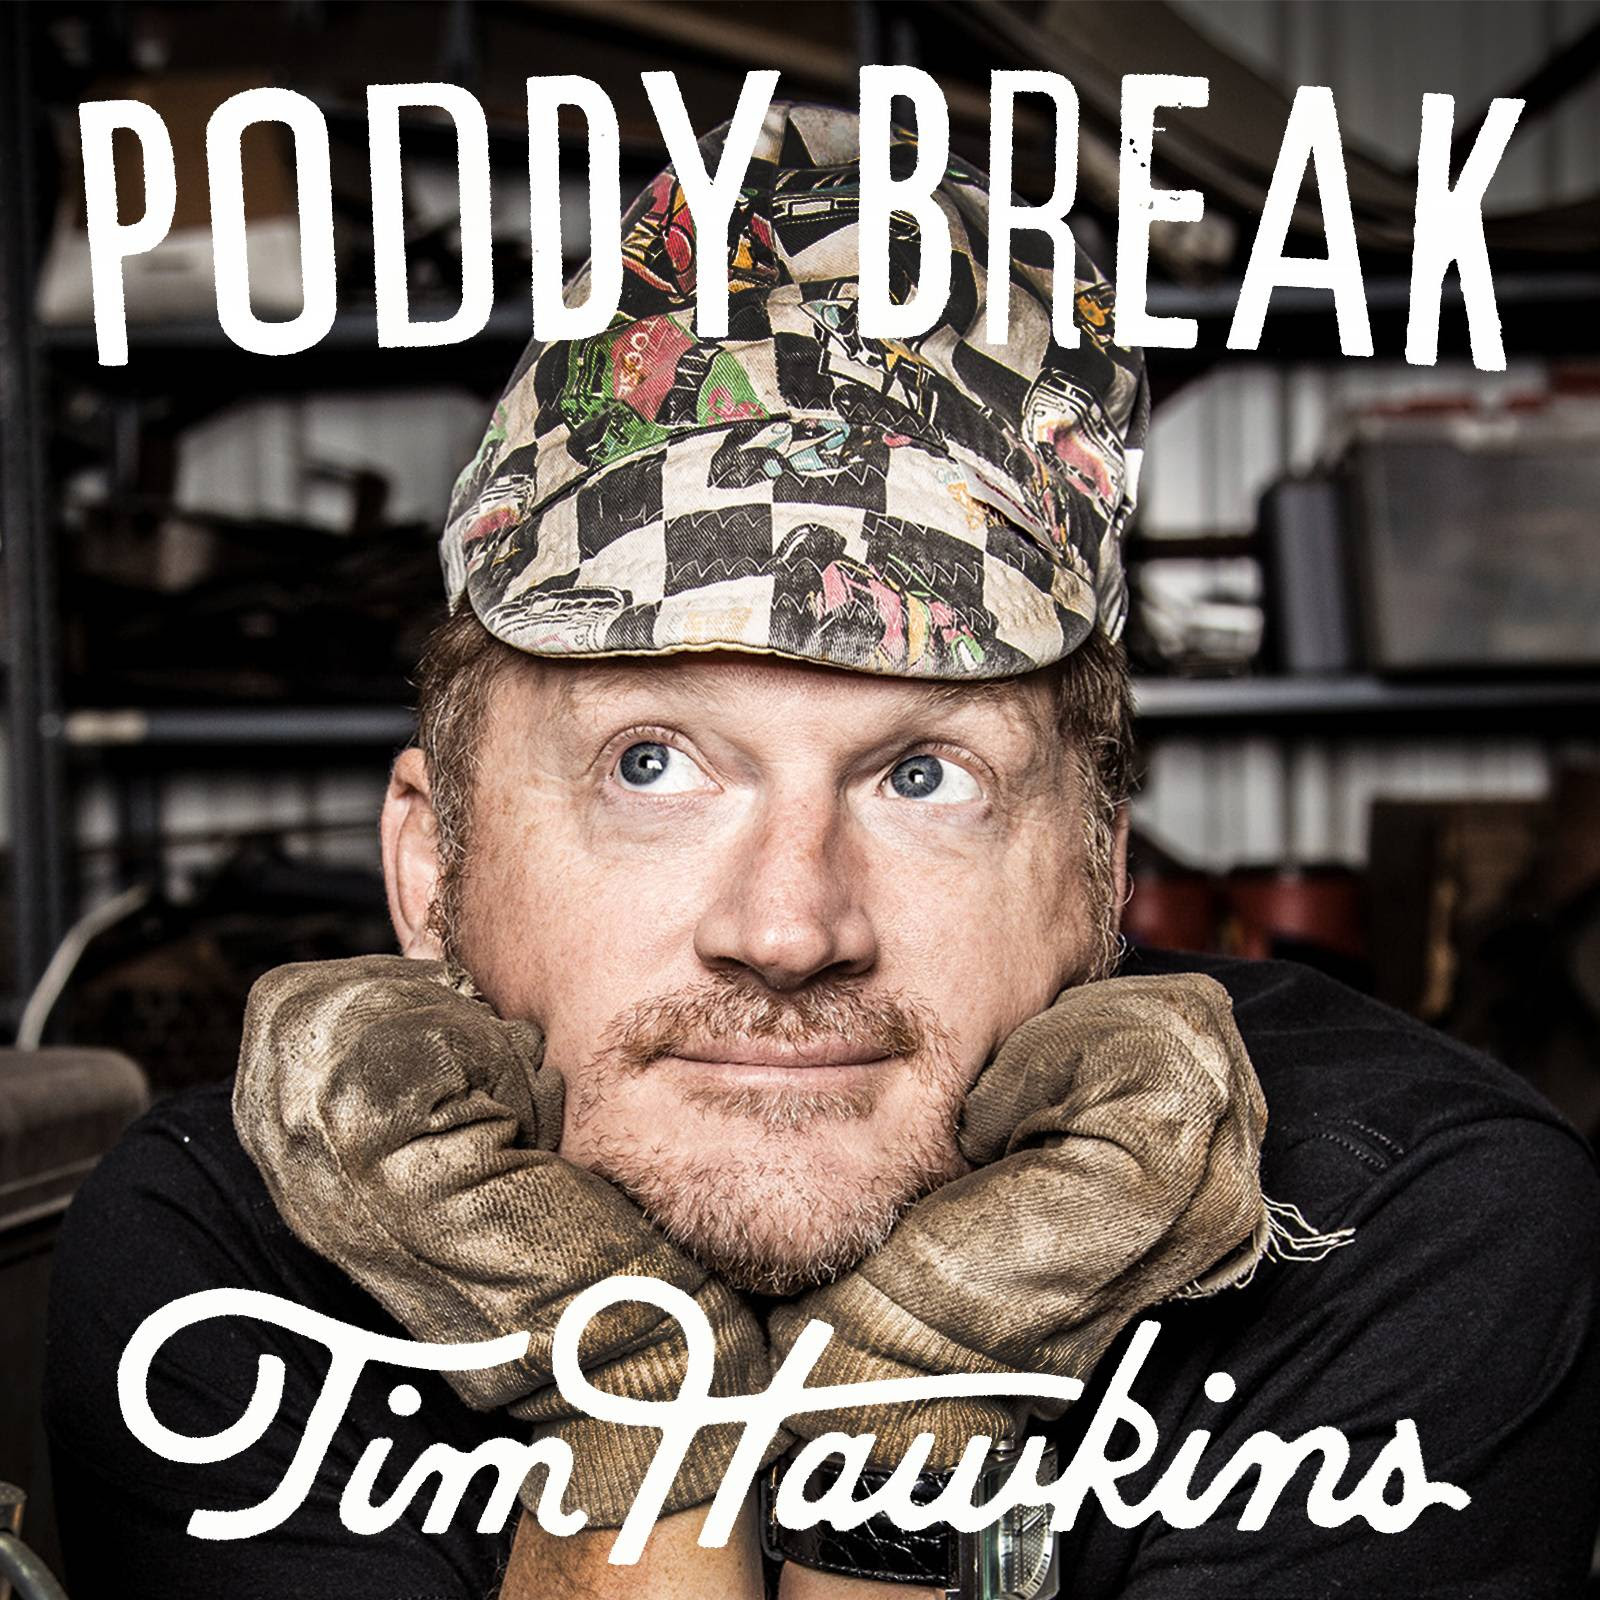 Image result for poddy break tim hawkins